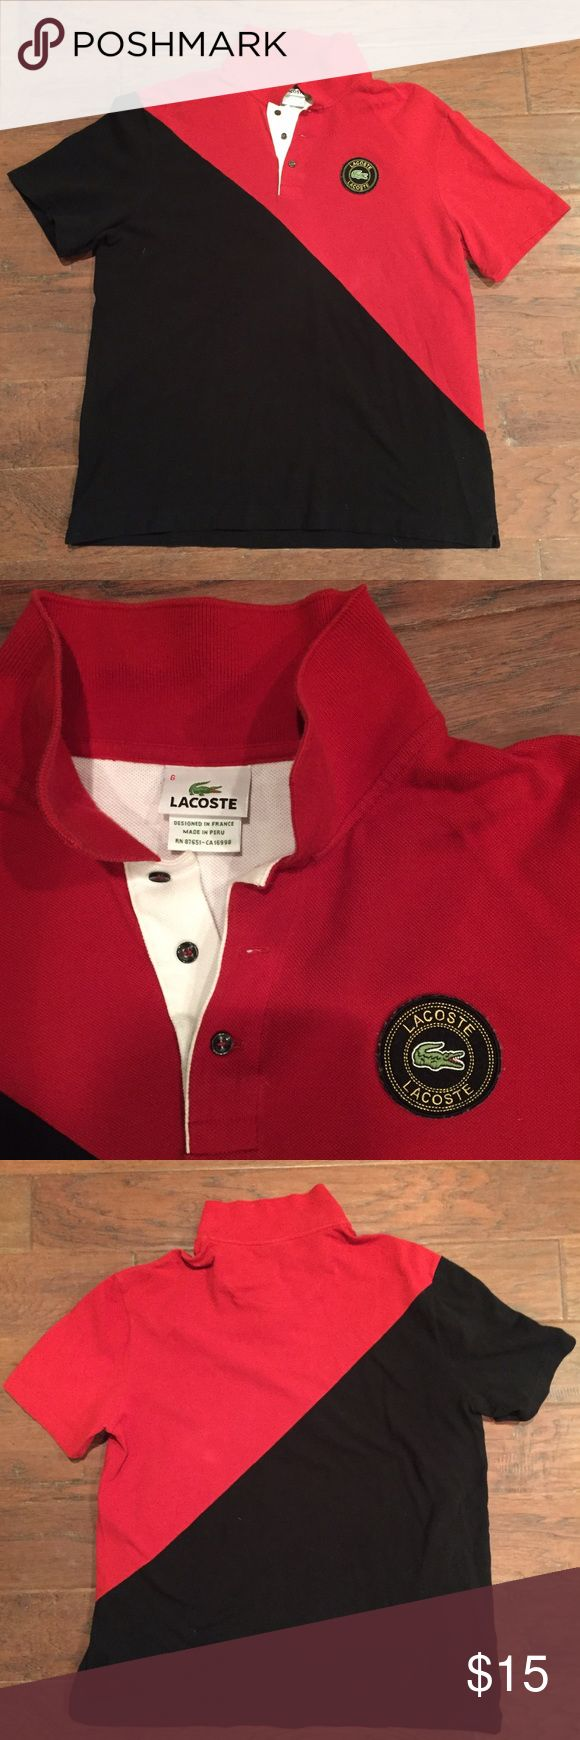 Lacoste Polo Shirt Lacoste - Red & Black - Polo Shirt - Size Large Lacoste Shirts Polos